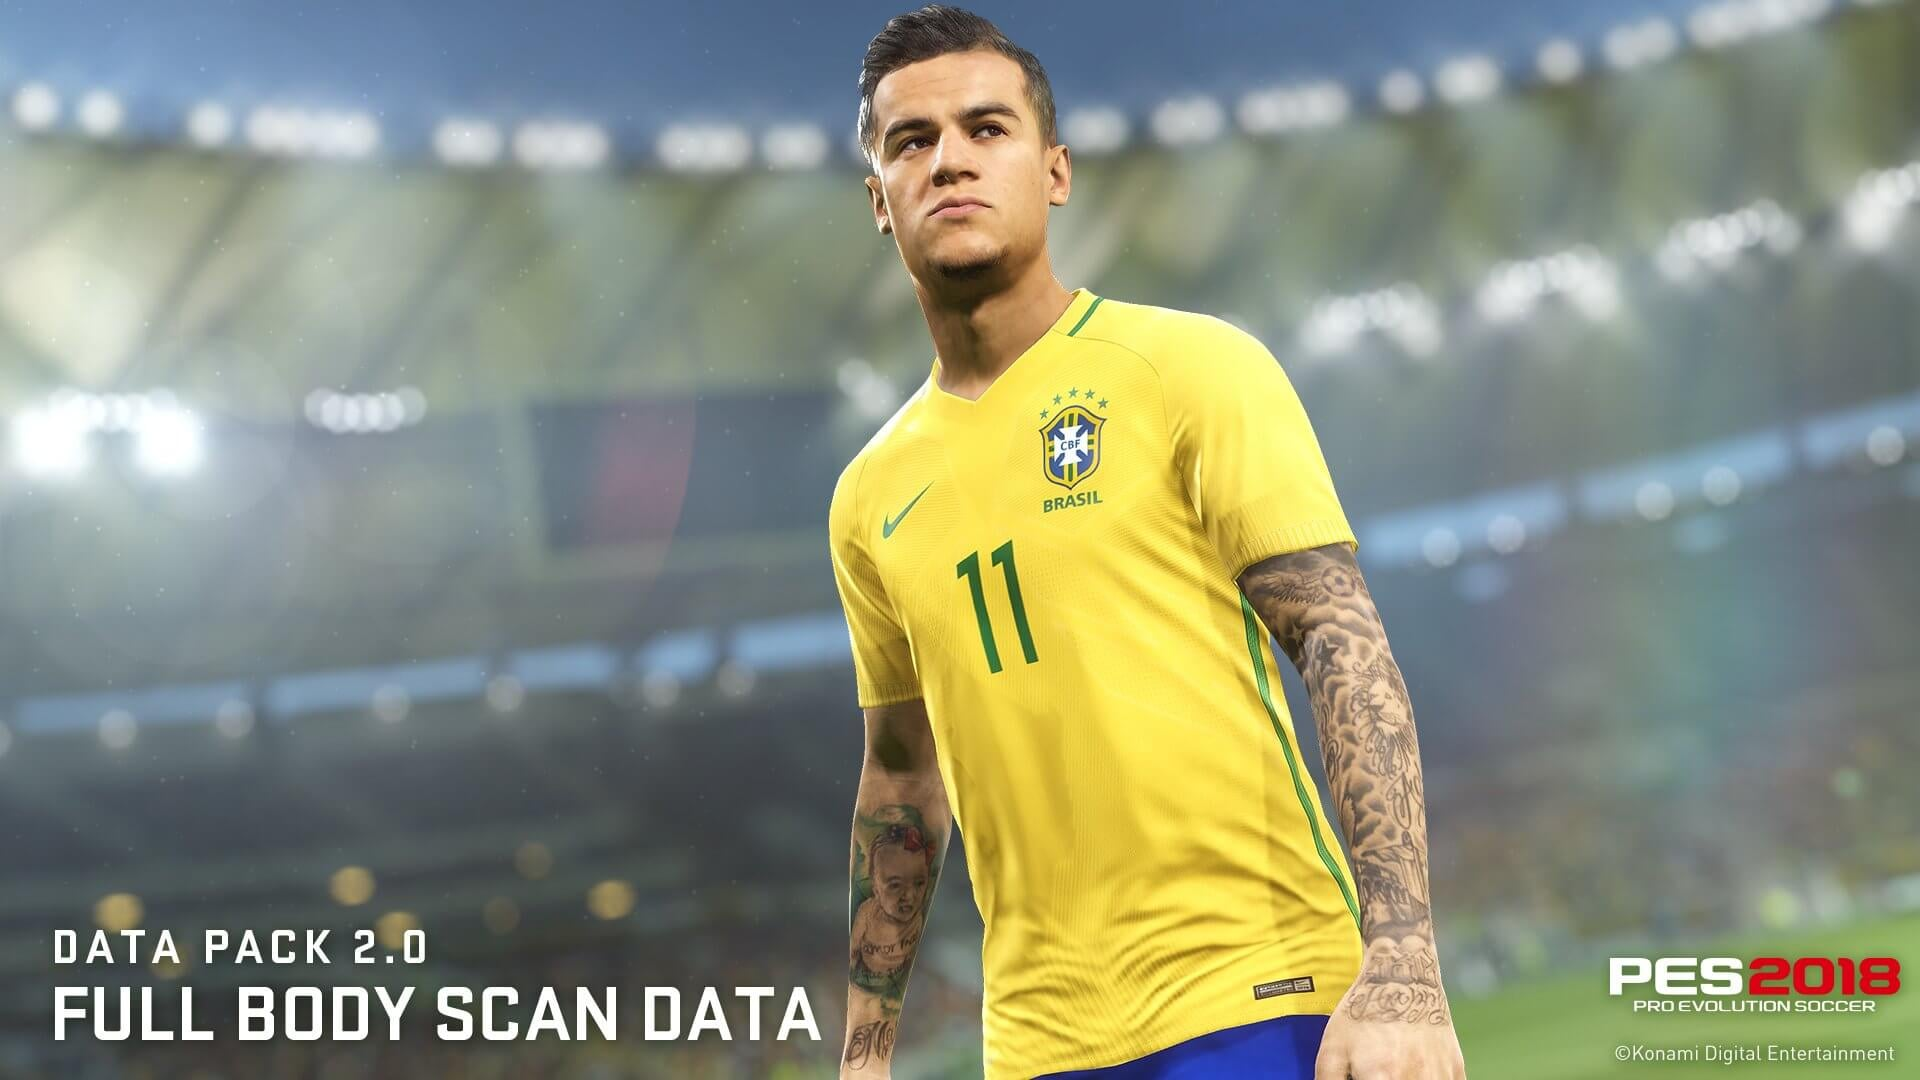 Data Pack 20 Arriving Soon For Pes 2018 Ps4 Pro Evolution Soccer